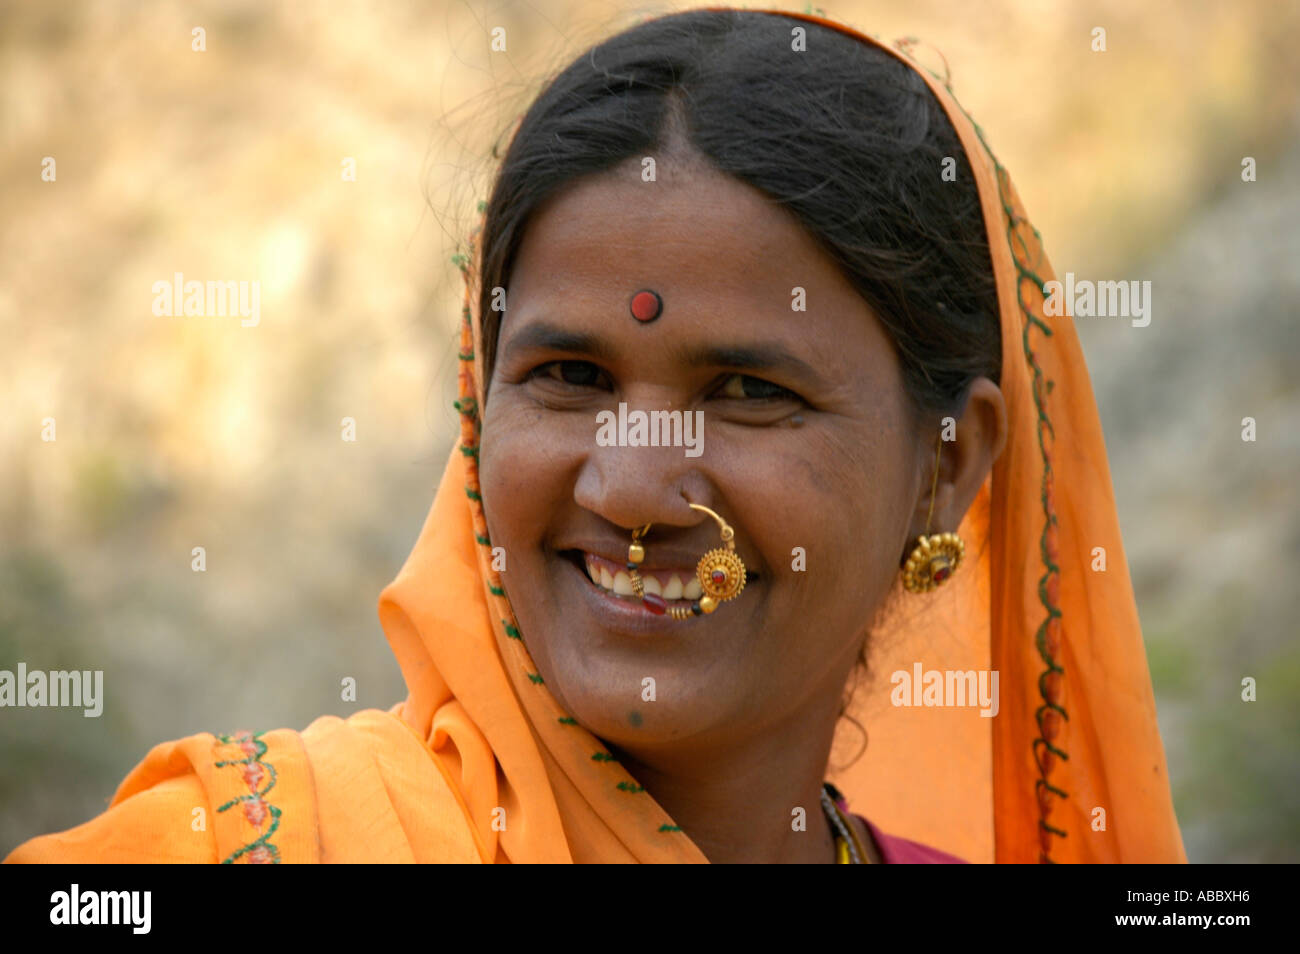 Portrait Of An Indian Women With Nose Ring And Juwelry Wearing